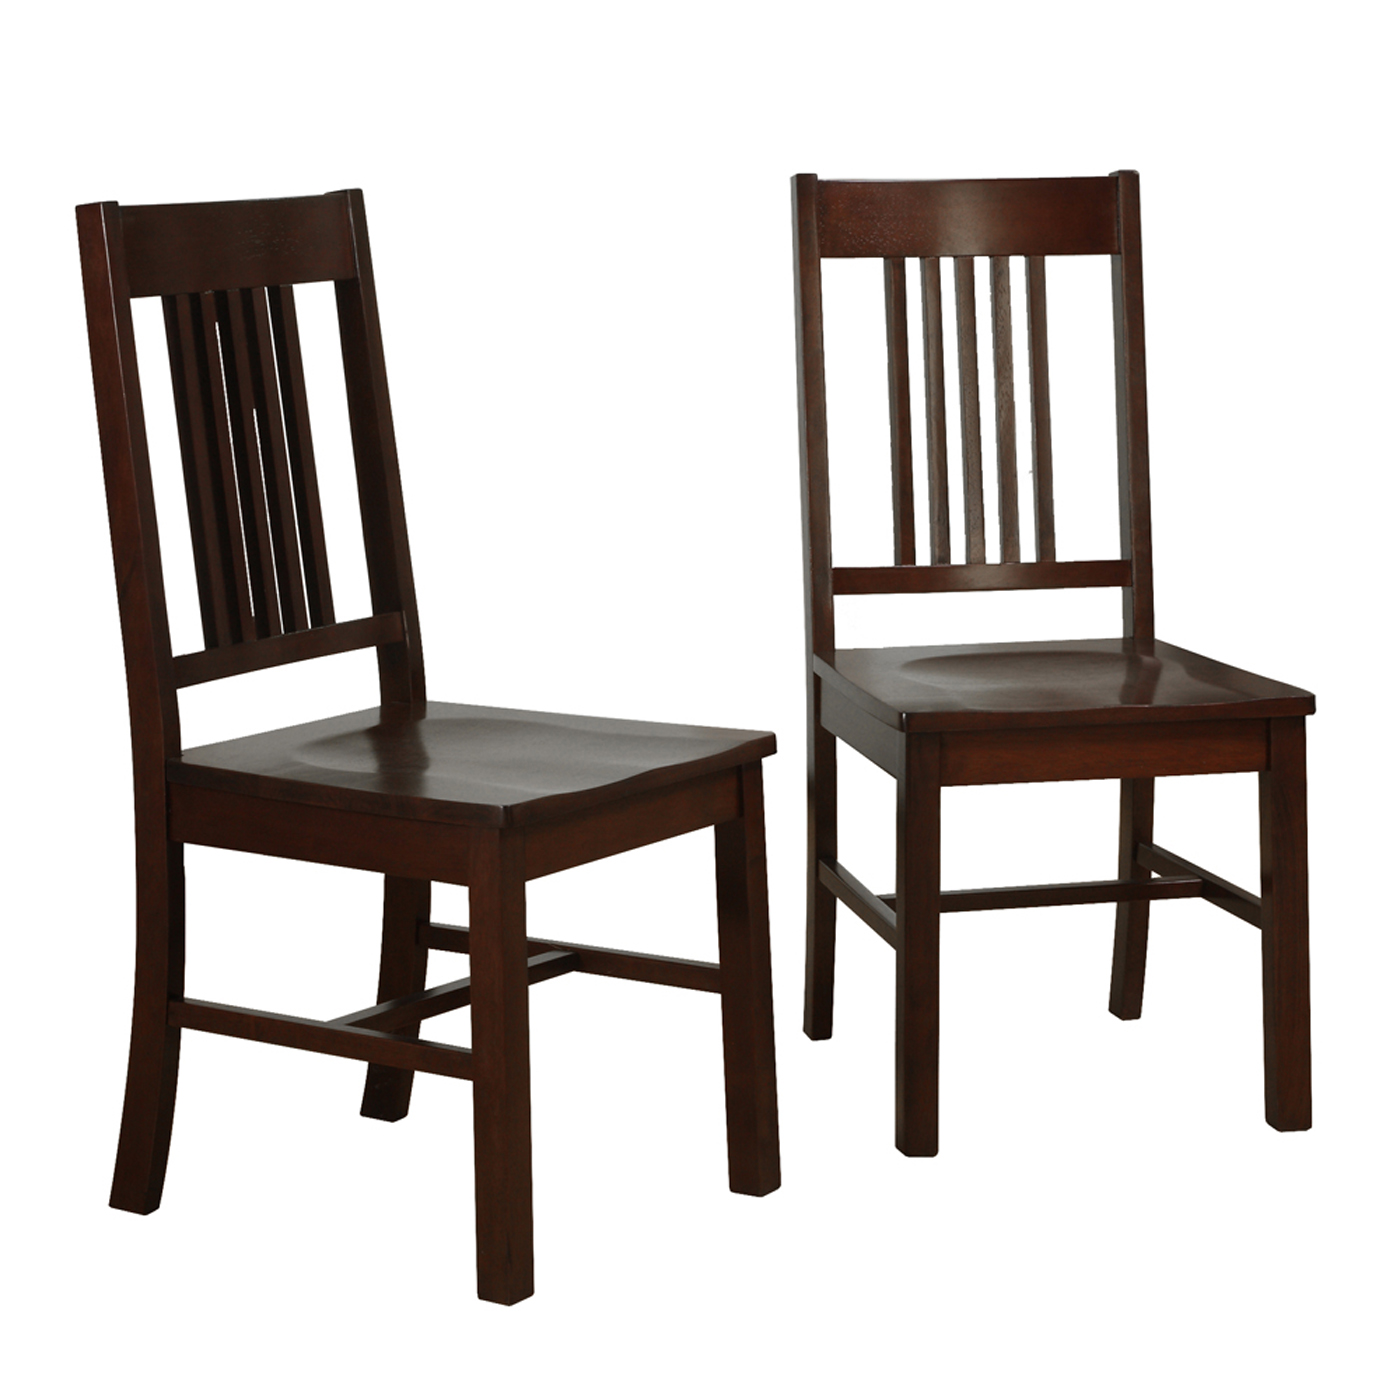 Chairs Dining Wood Dining Chairs Cappuccino Set Of 2 In Dining Chairs